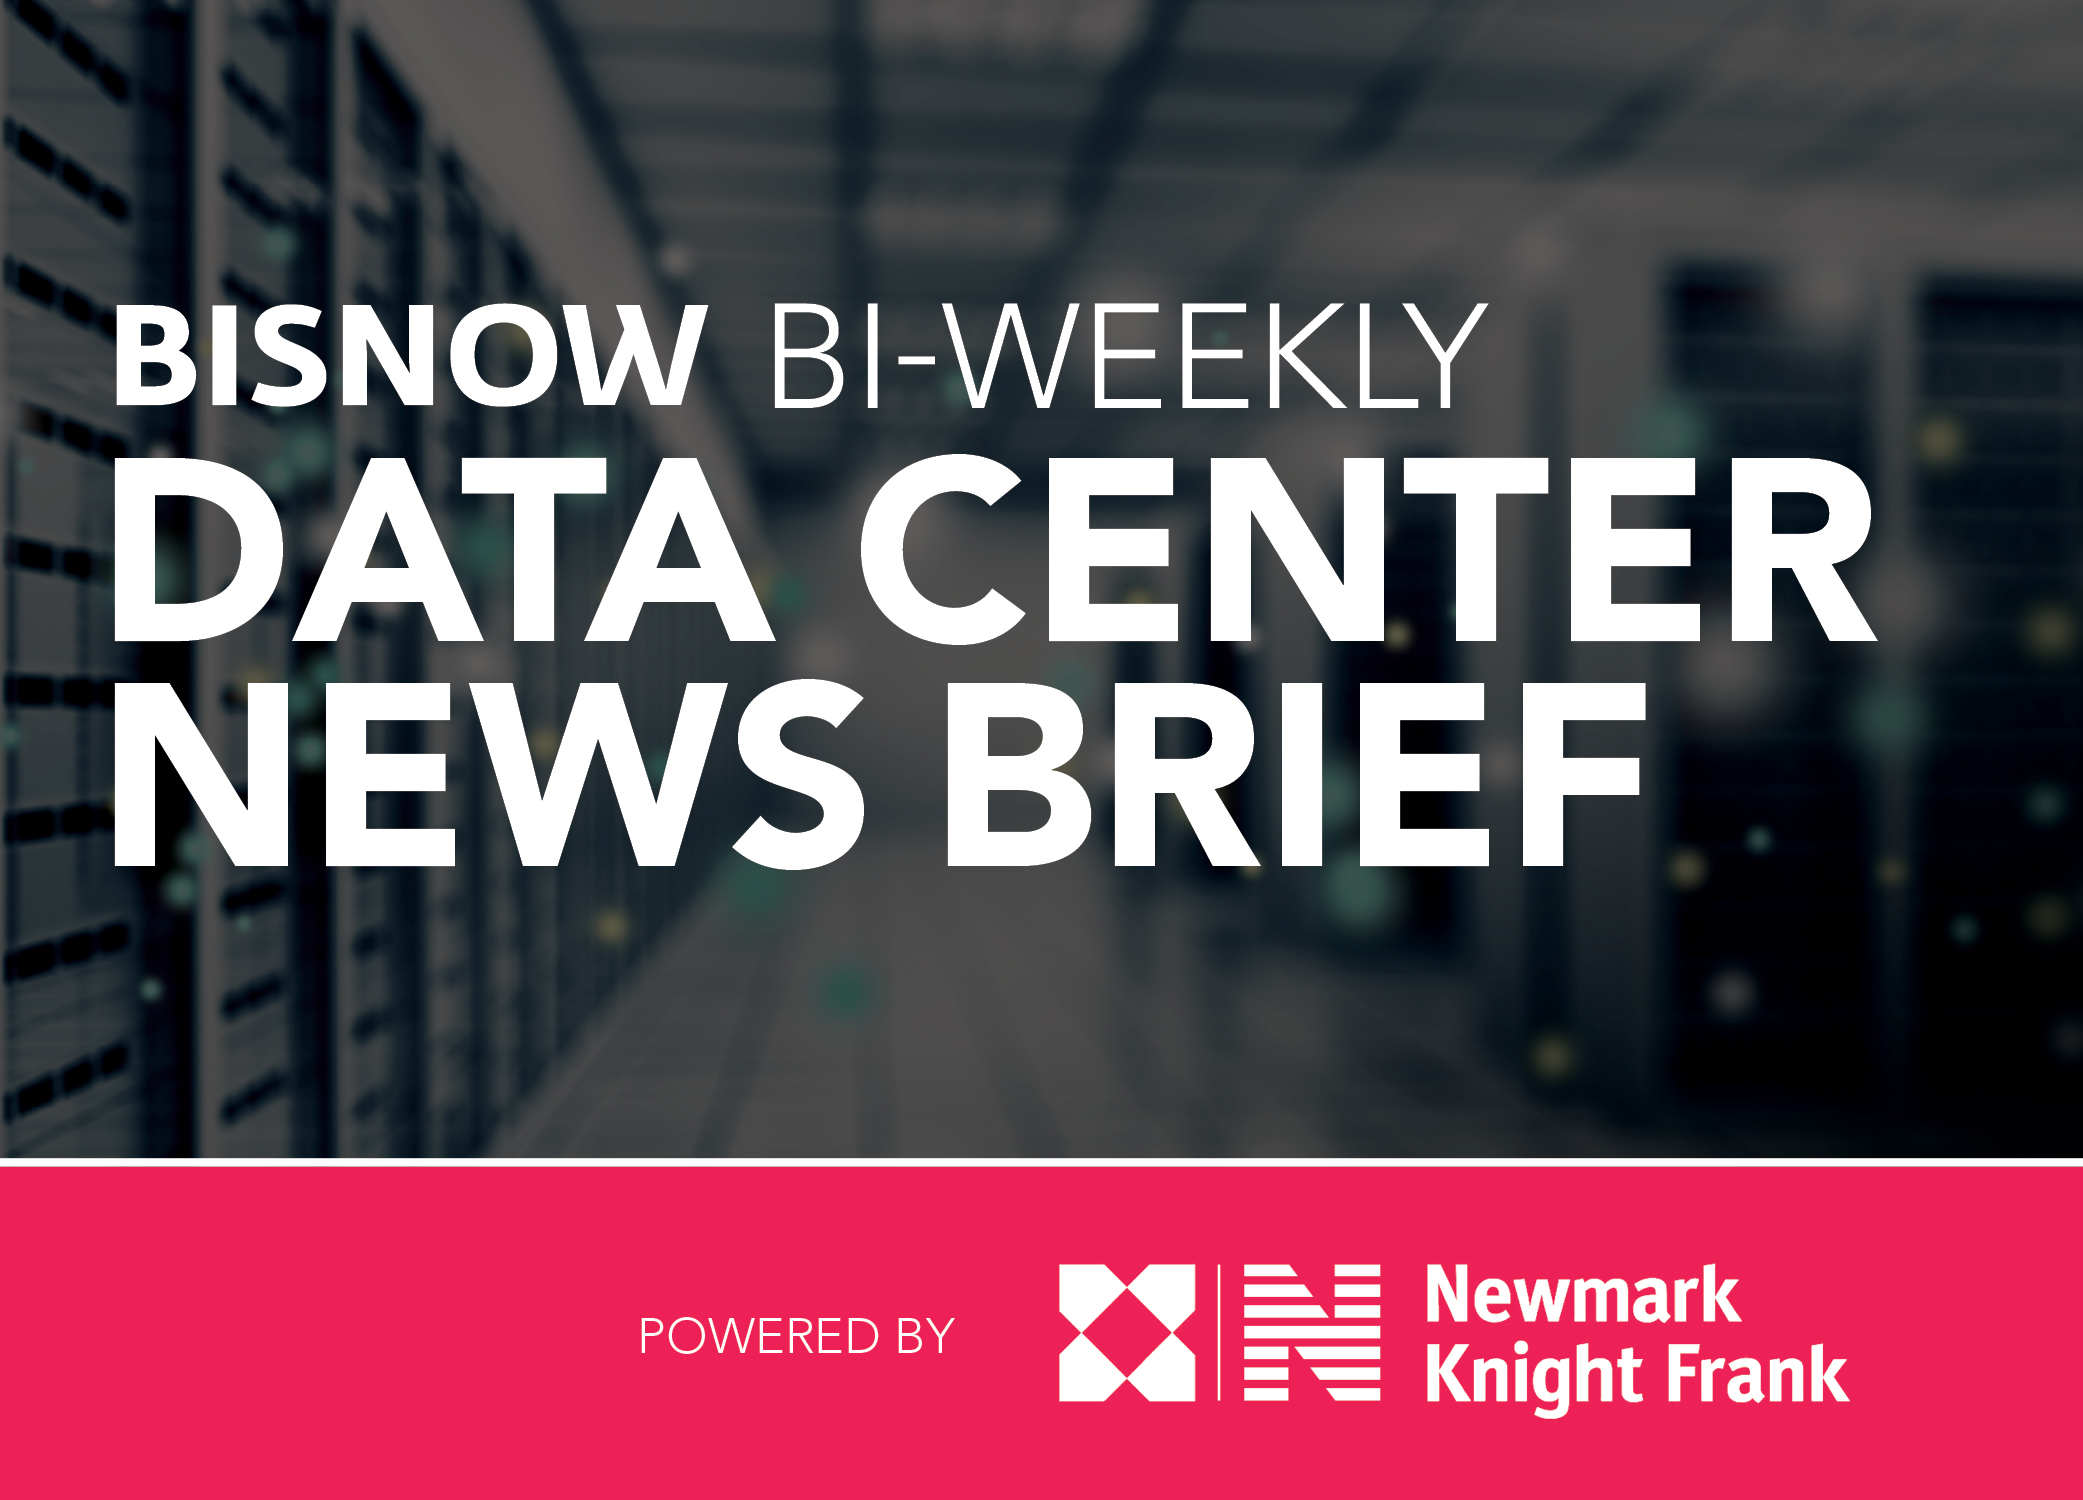 Bisnow Morning Brief Data Center WEEKLY BRIEF [National]